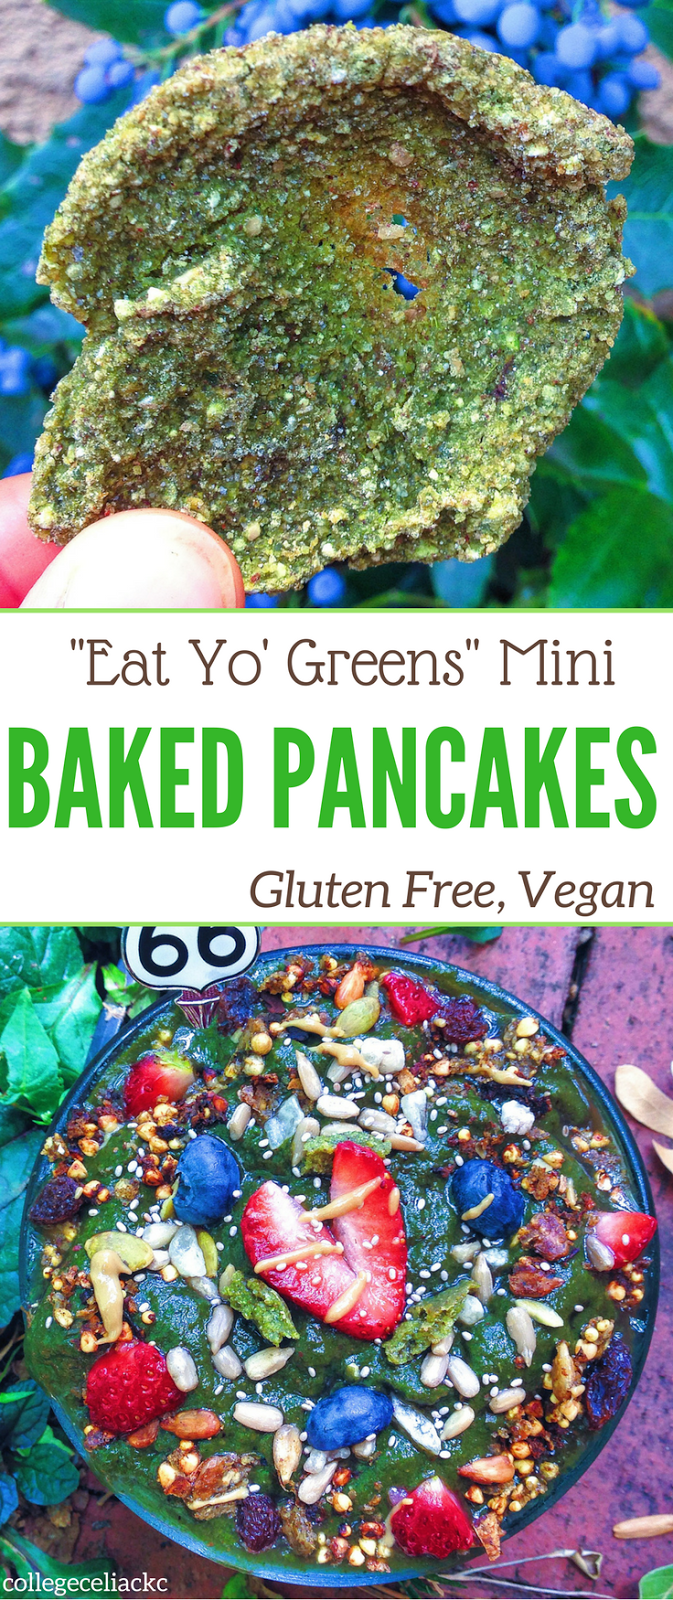 """Eat Yo' Greens"" Mini Baked Pancakes (Gluten Free, Vegan)"